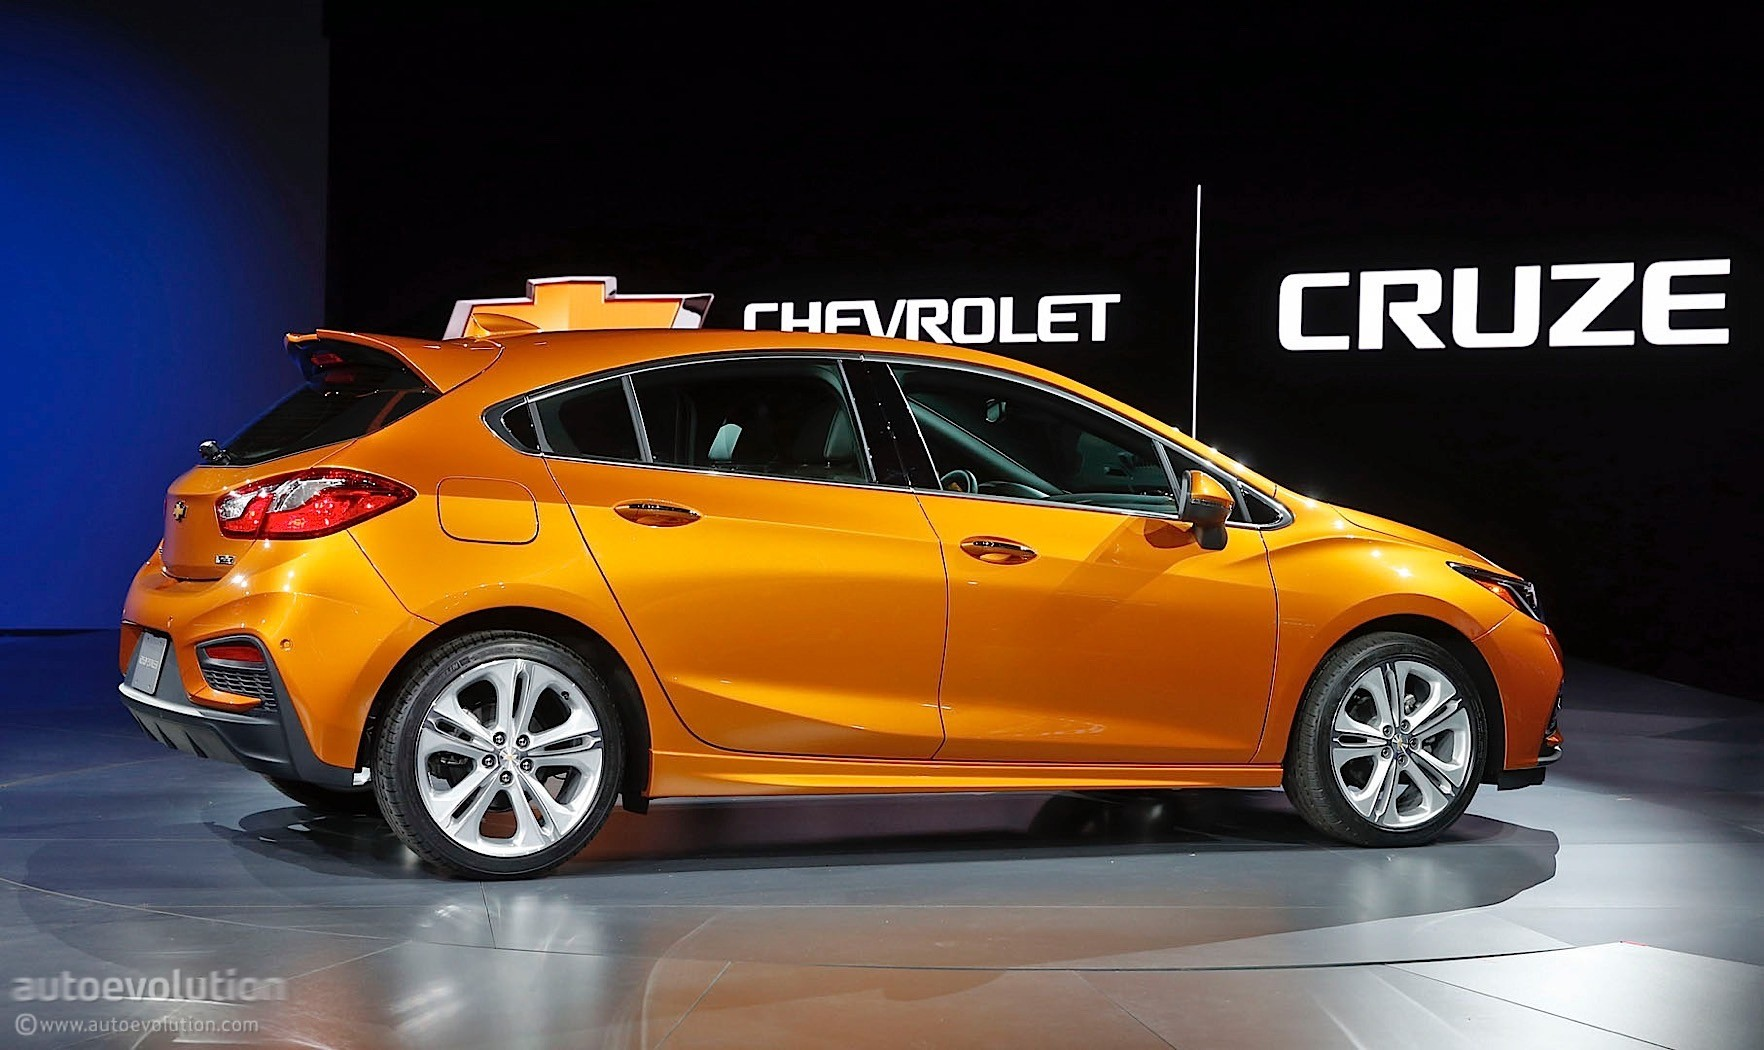 2015 Chevy Ss Sedan Here's the 2017 Chevrolet Cruze Hatch in Full Color - autoevolution